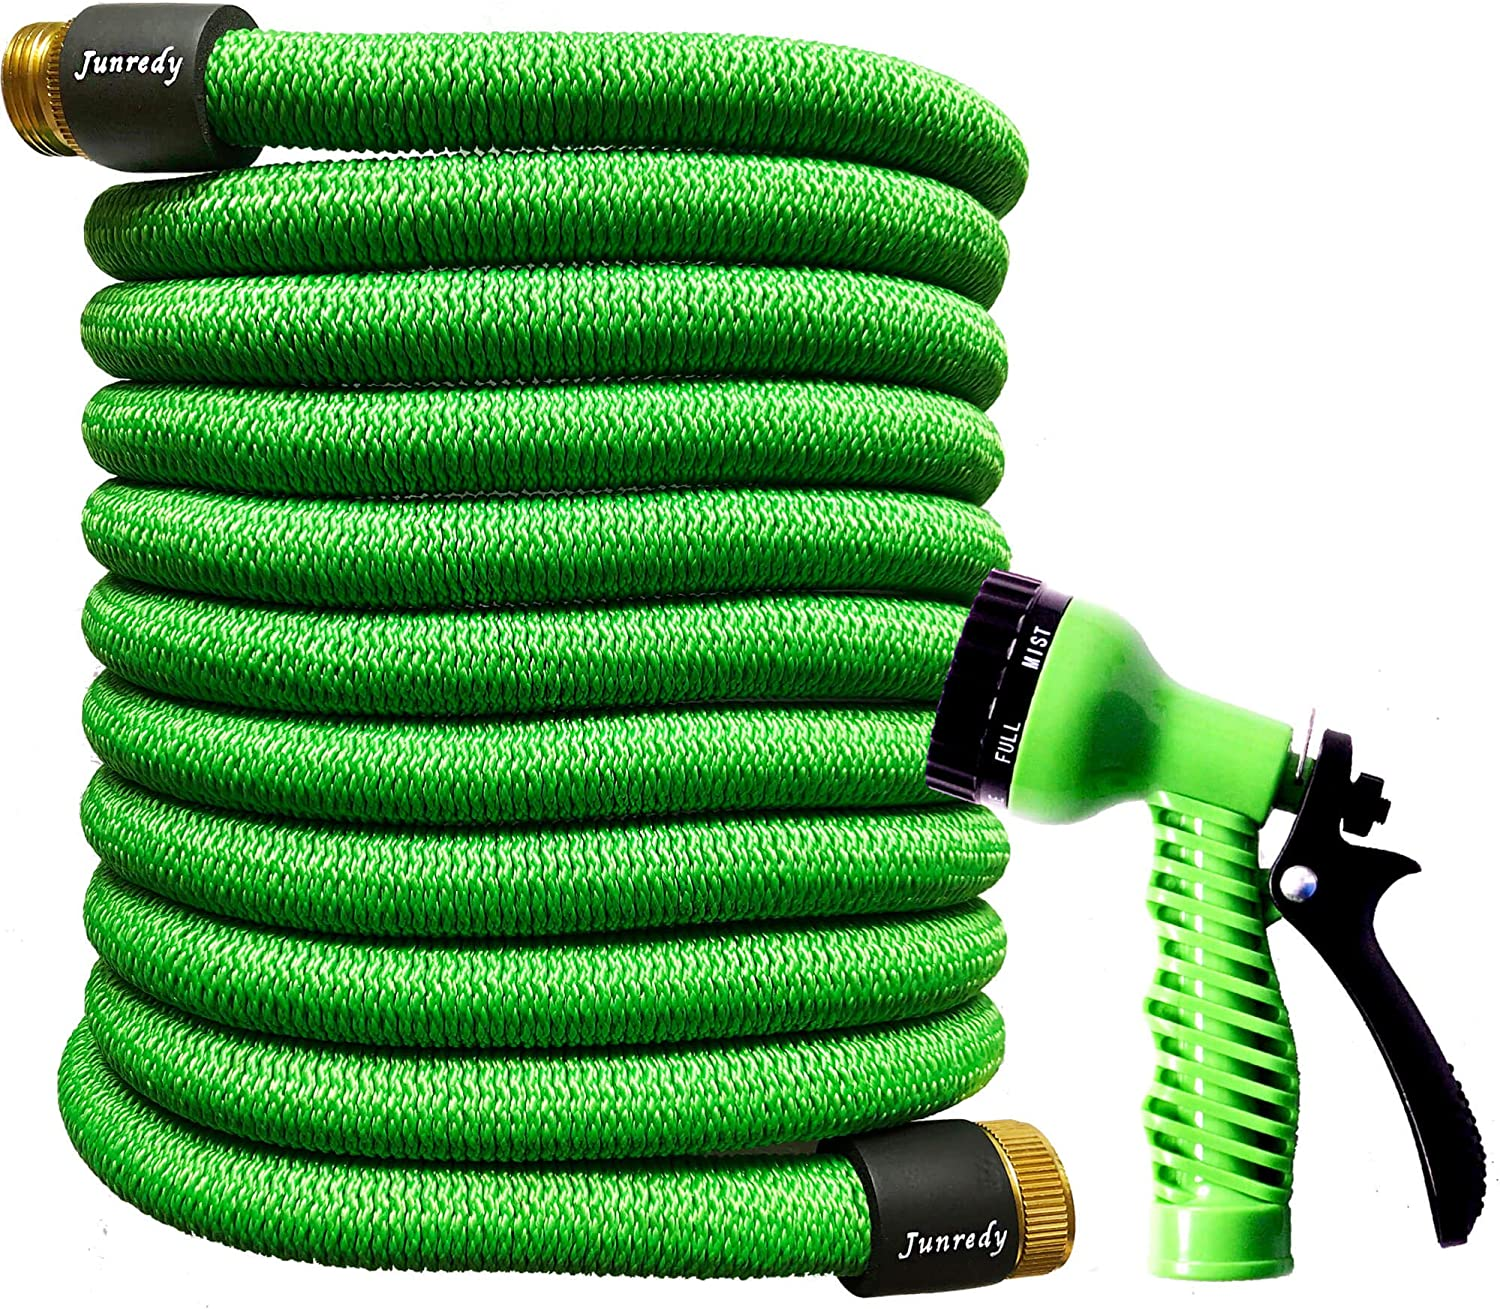 "Junredy 50ft Garden Hose Expandable Water Hose - Durable 3750D Fabric | 3/4"" Metal Connectors with Protectors 